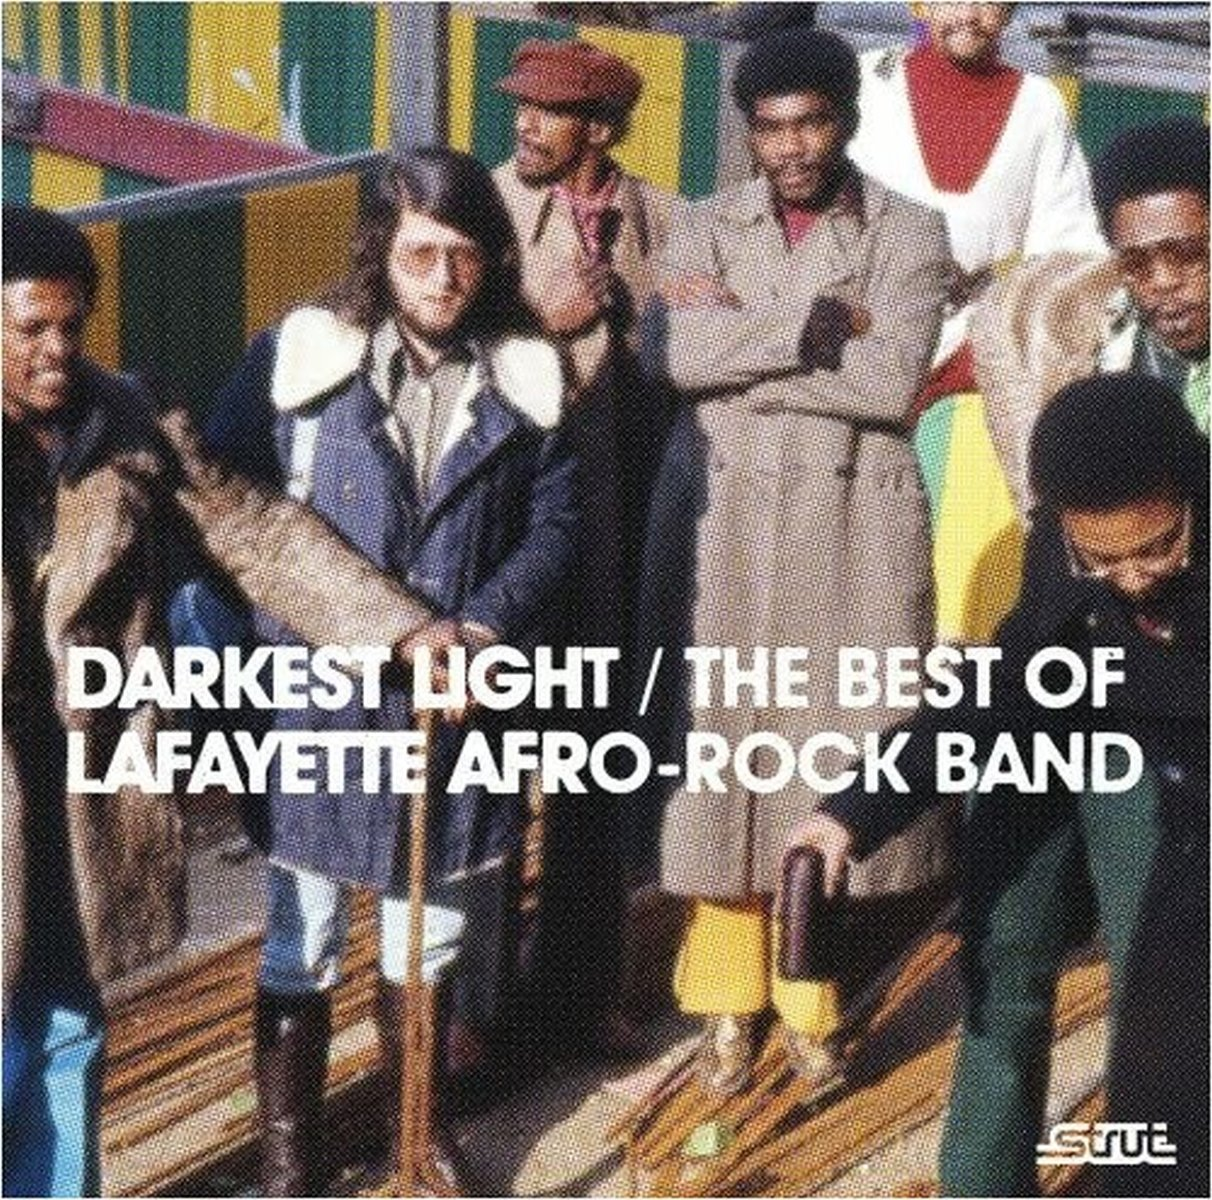 Darkest Light: The Best of the Lafayette Afro Rock Band by Studio K7